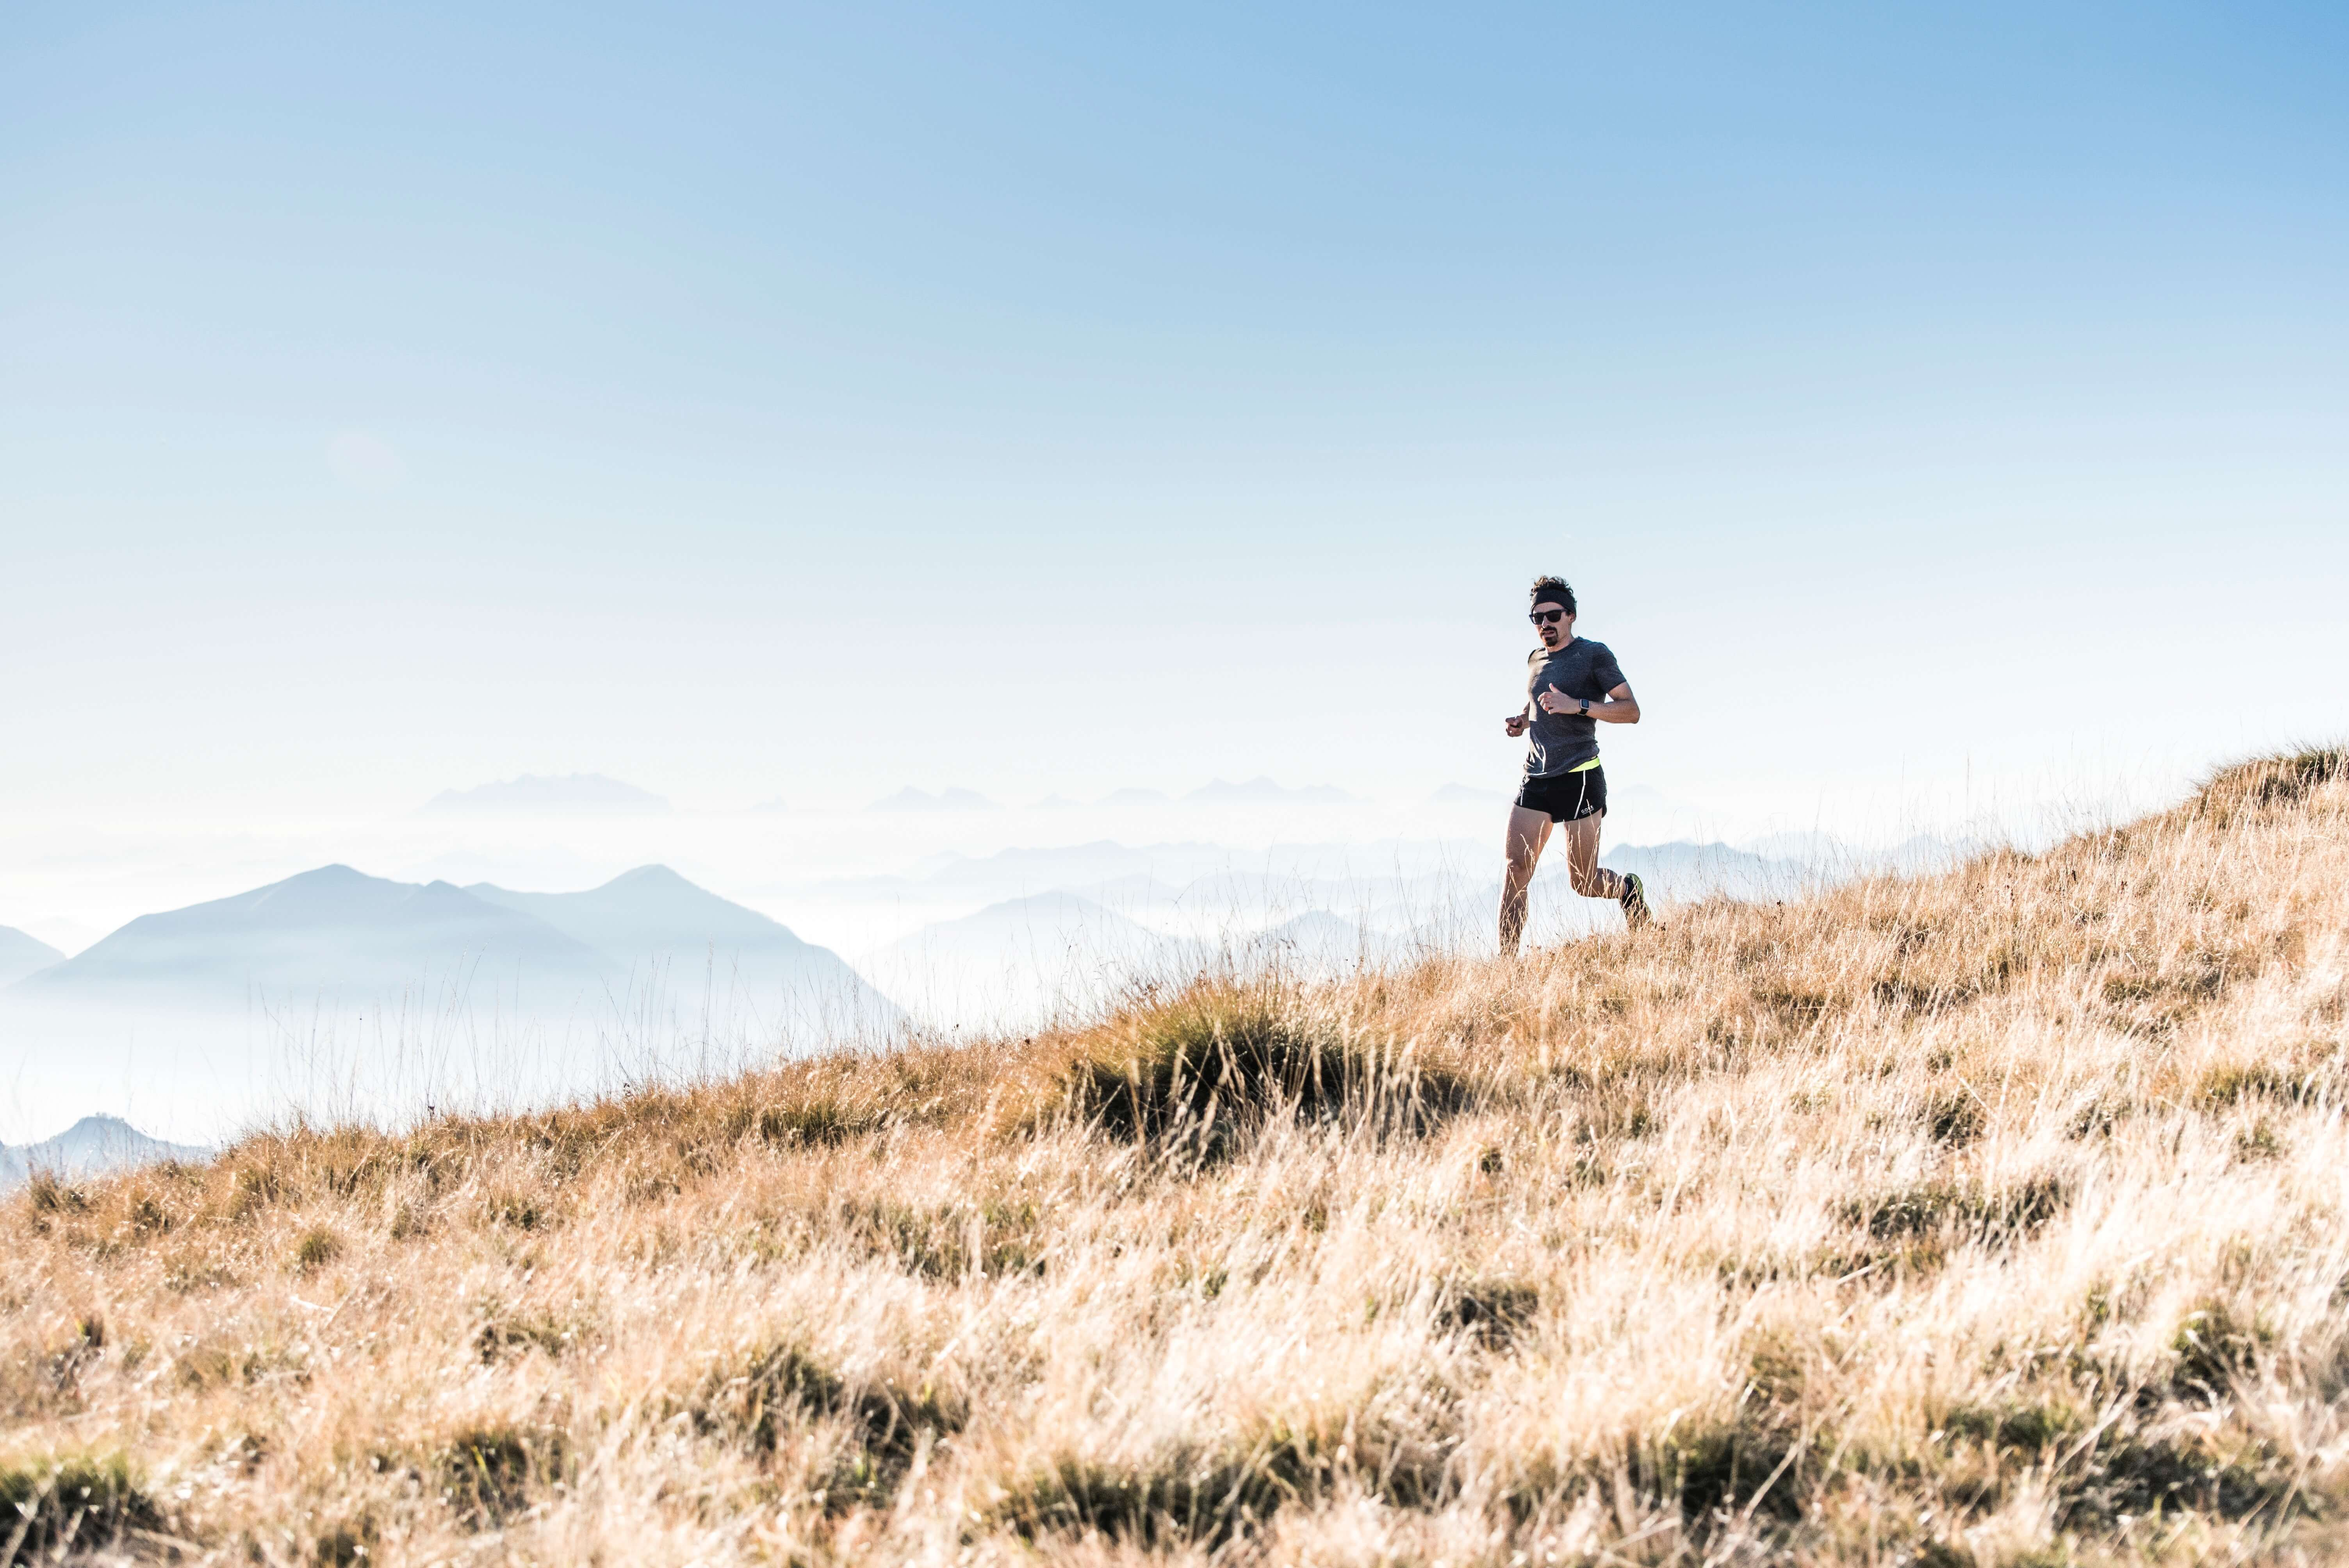 Image shows man running across a field with mountains in the distance. Representing frugal exercise.